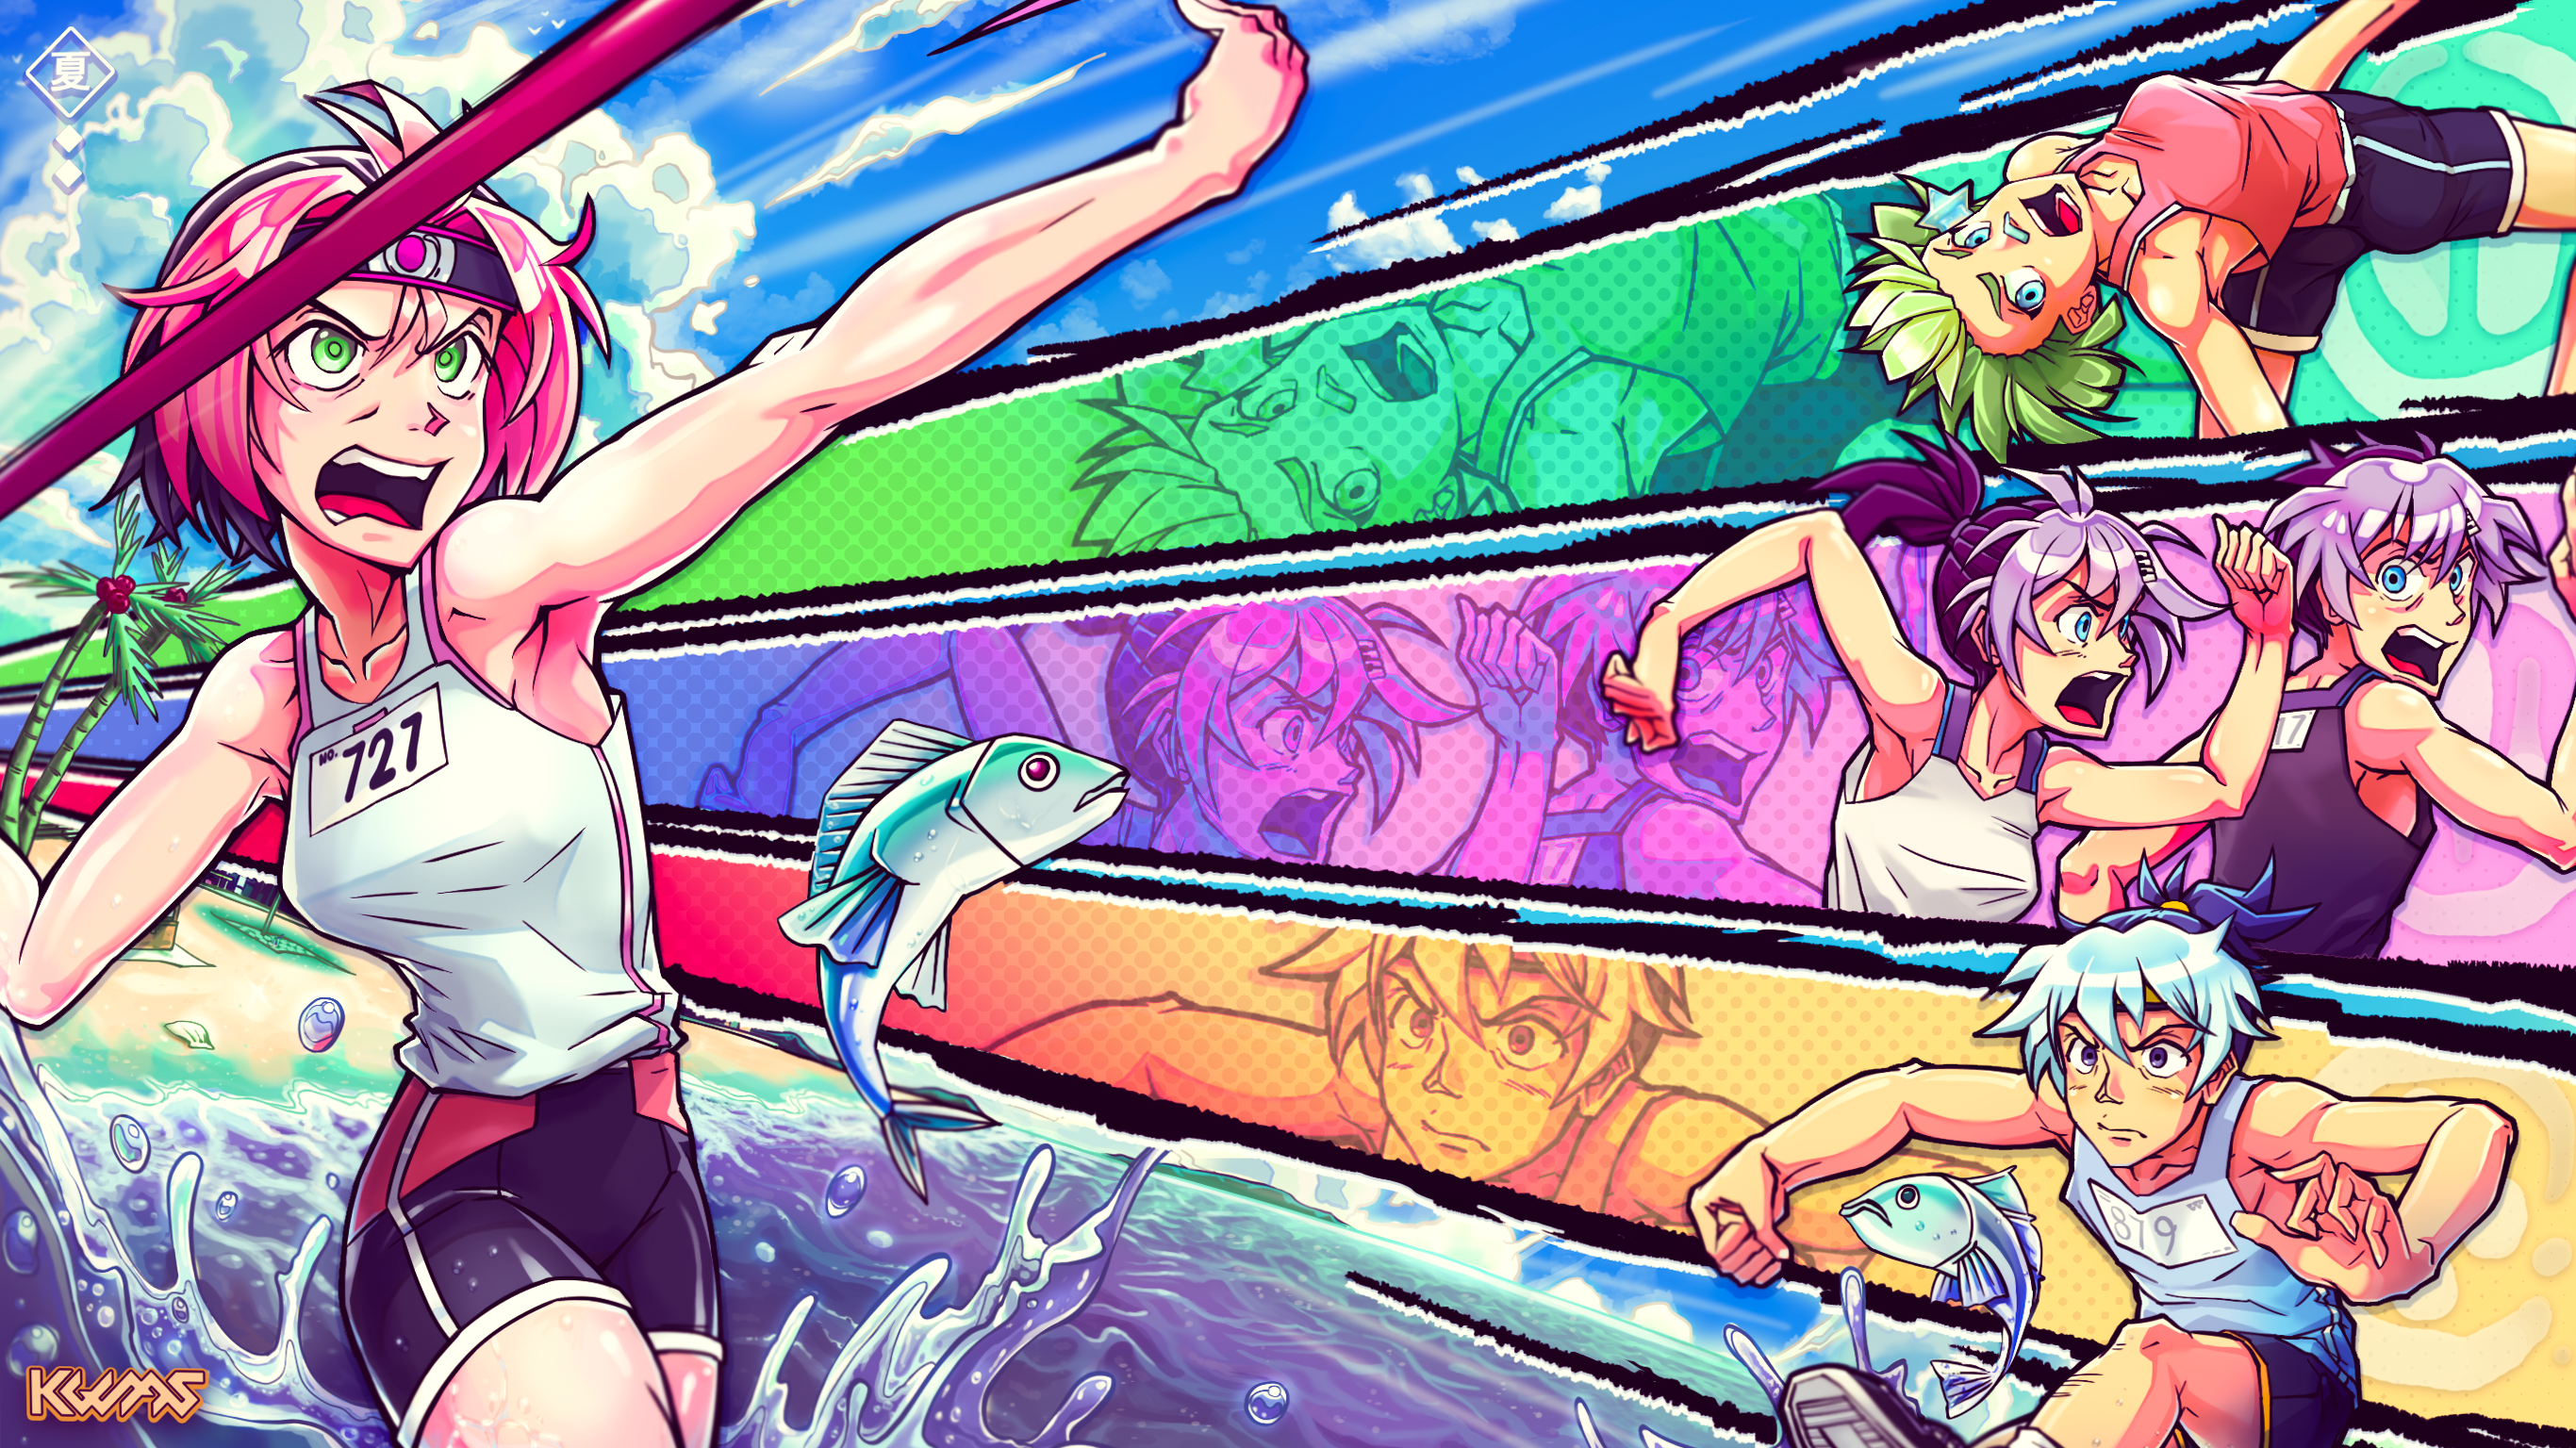 Summer 2021 Track and Field Fanart Contest entry!!